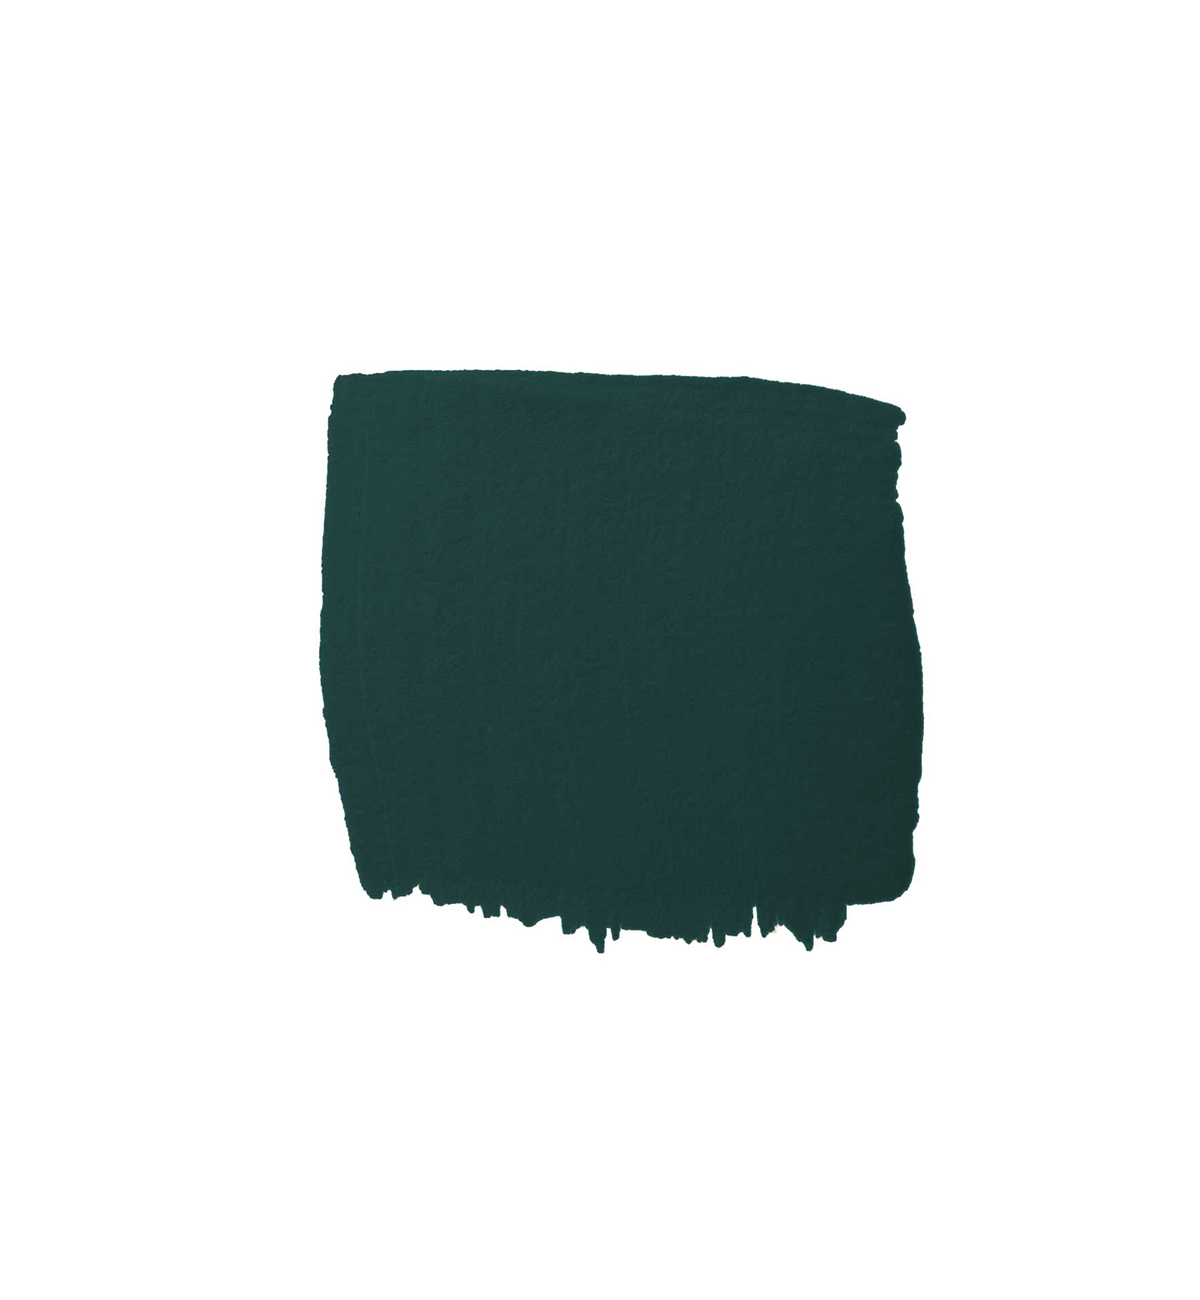 Botanic Green Paint Color